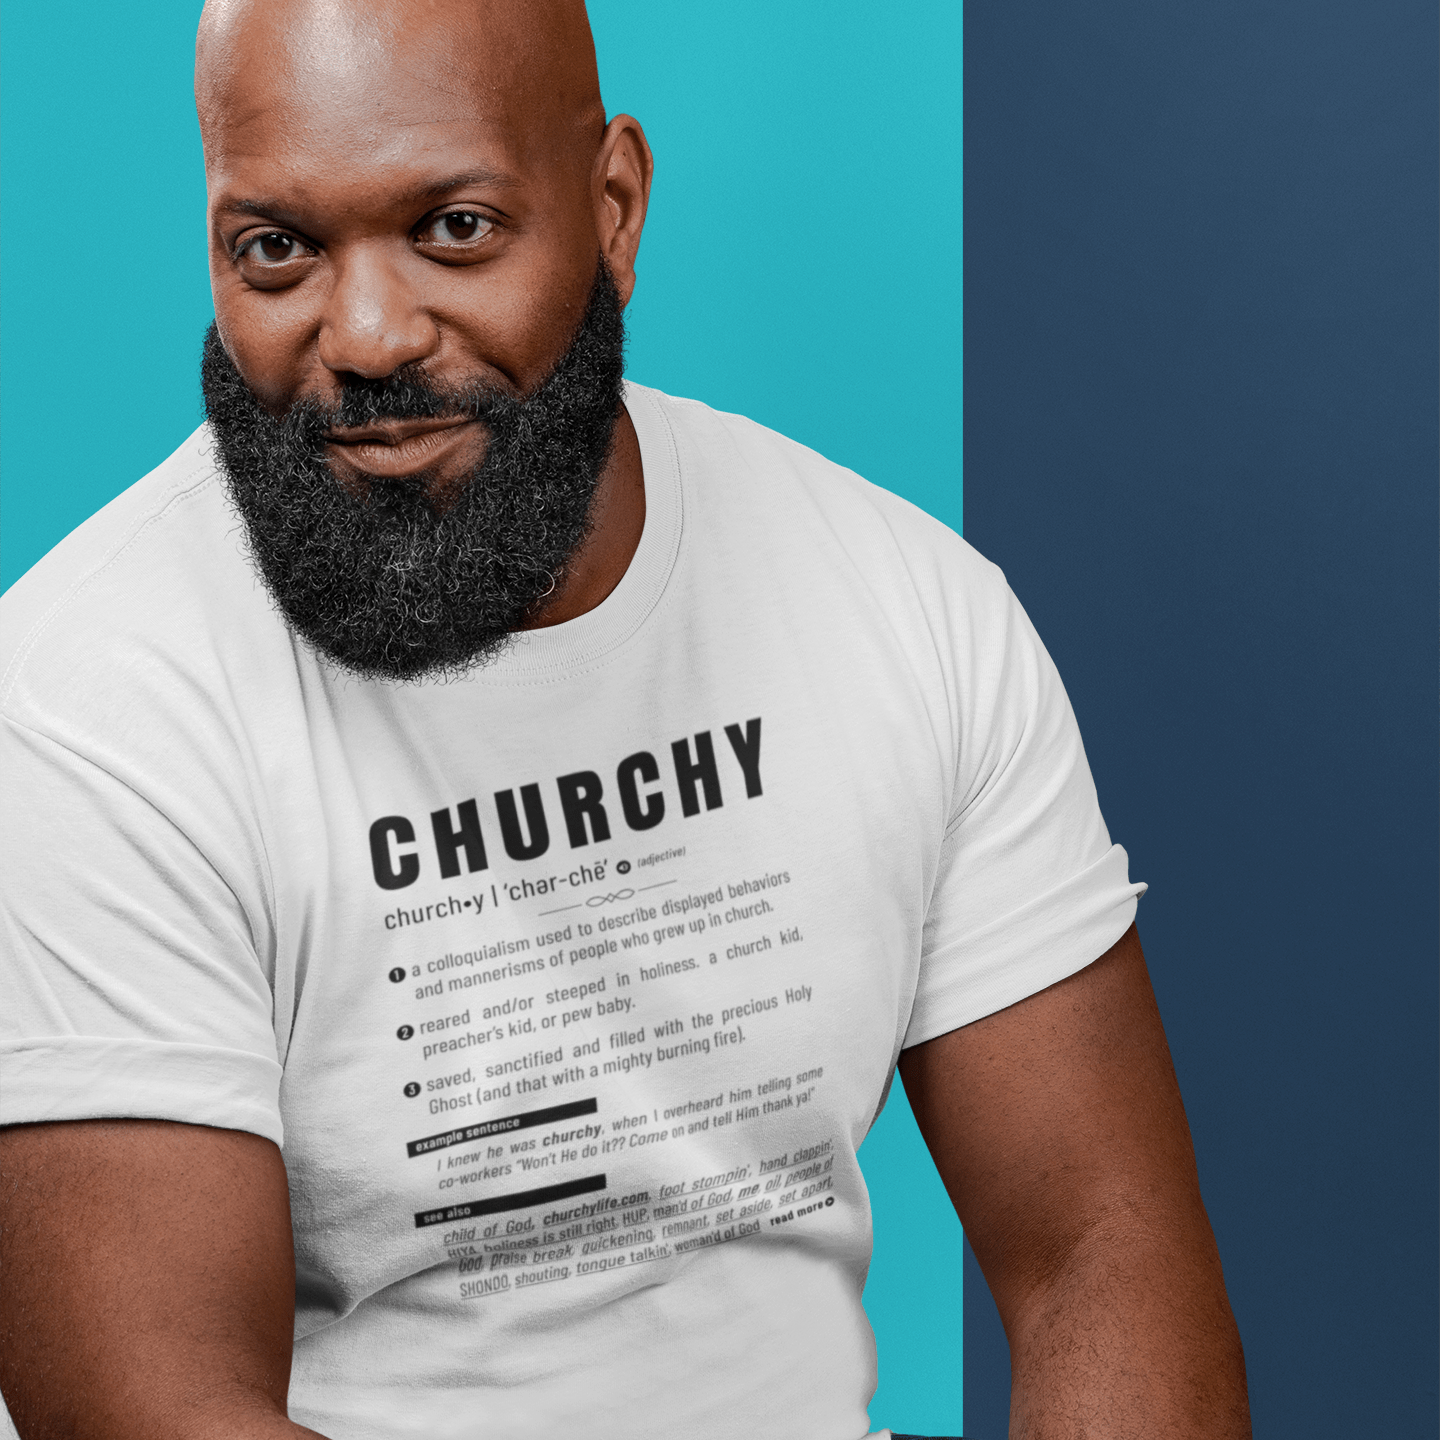 churchy-definition-guy-white-shirt